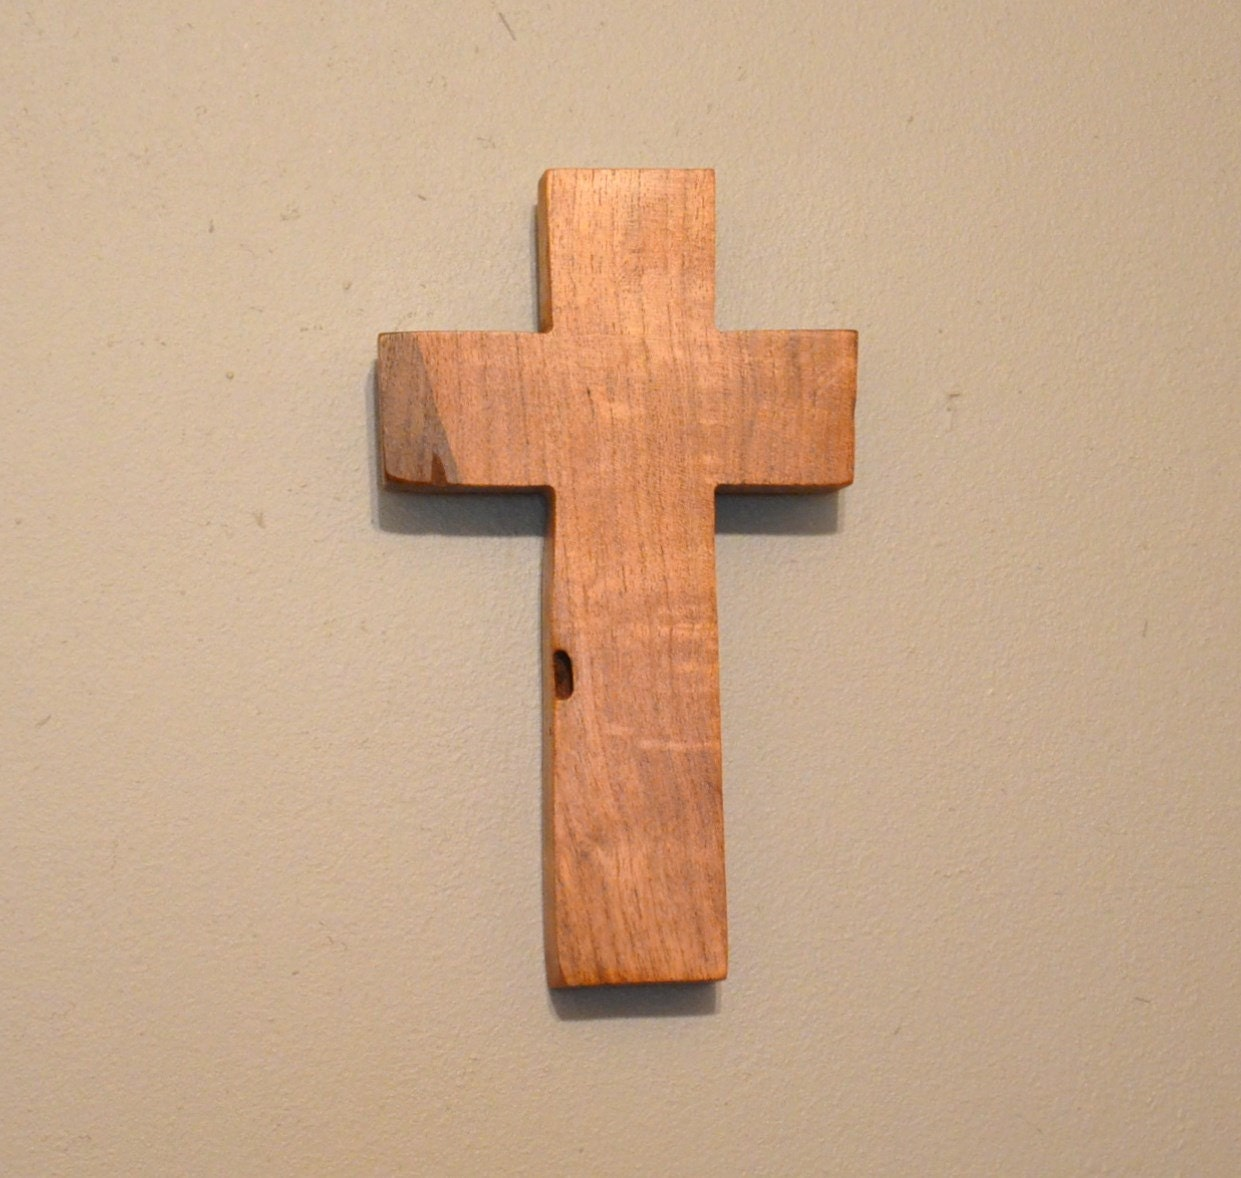 Wood Cross For Your Cross Wall Decor Original Crooked